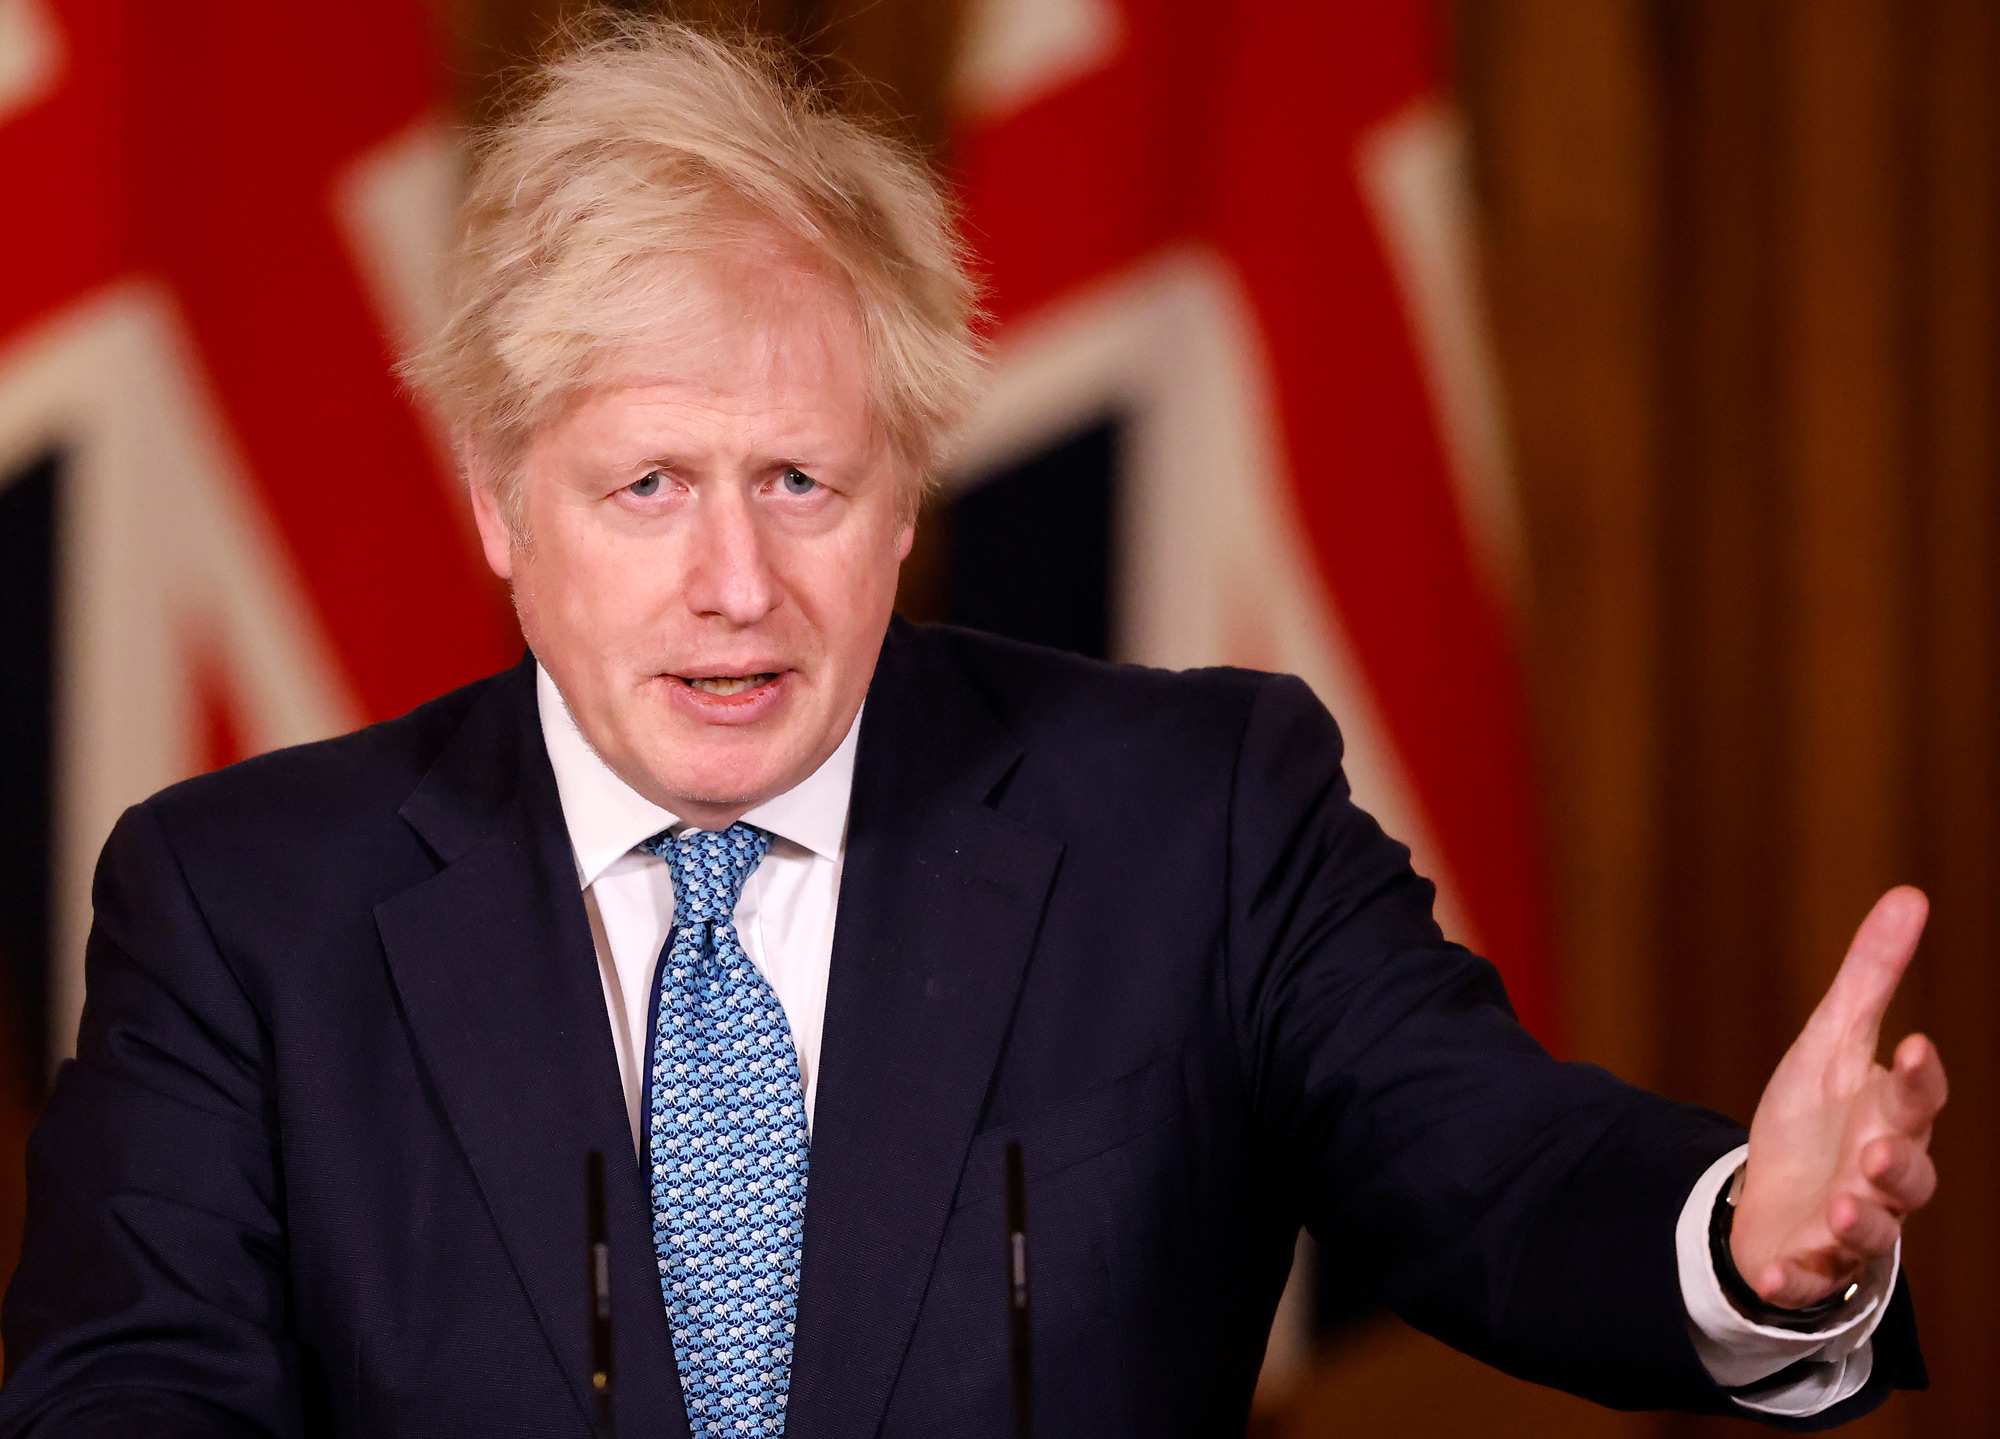 Britain's Prime Minister Boris Johnson speaks during a virtual press conference inside 10 Downing Street in London on December 21.